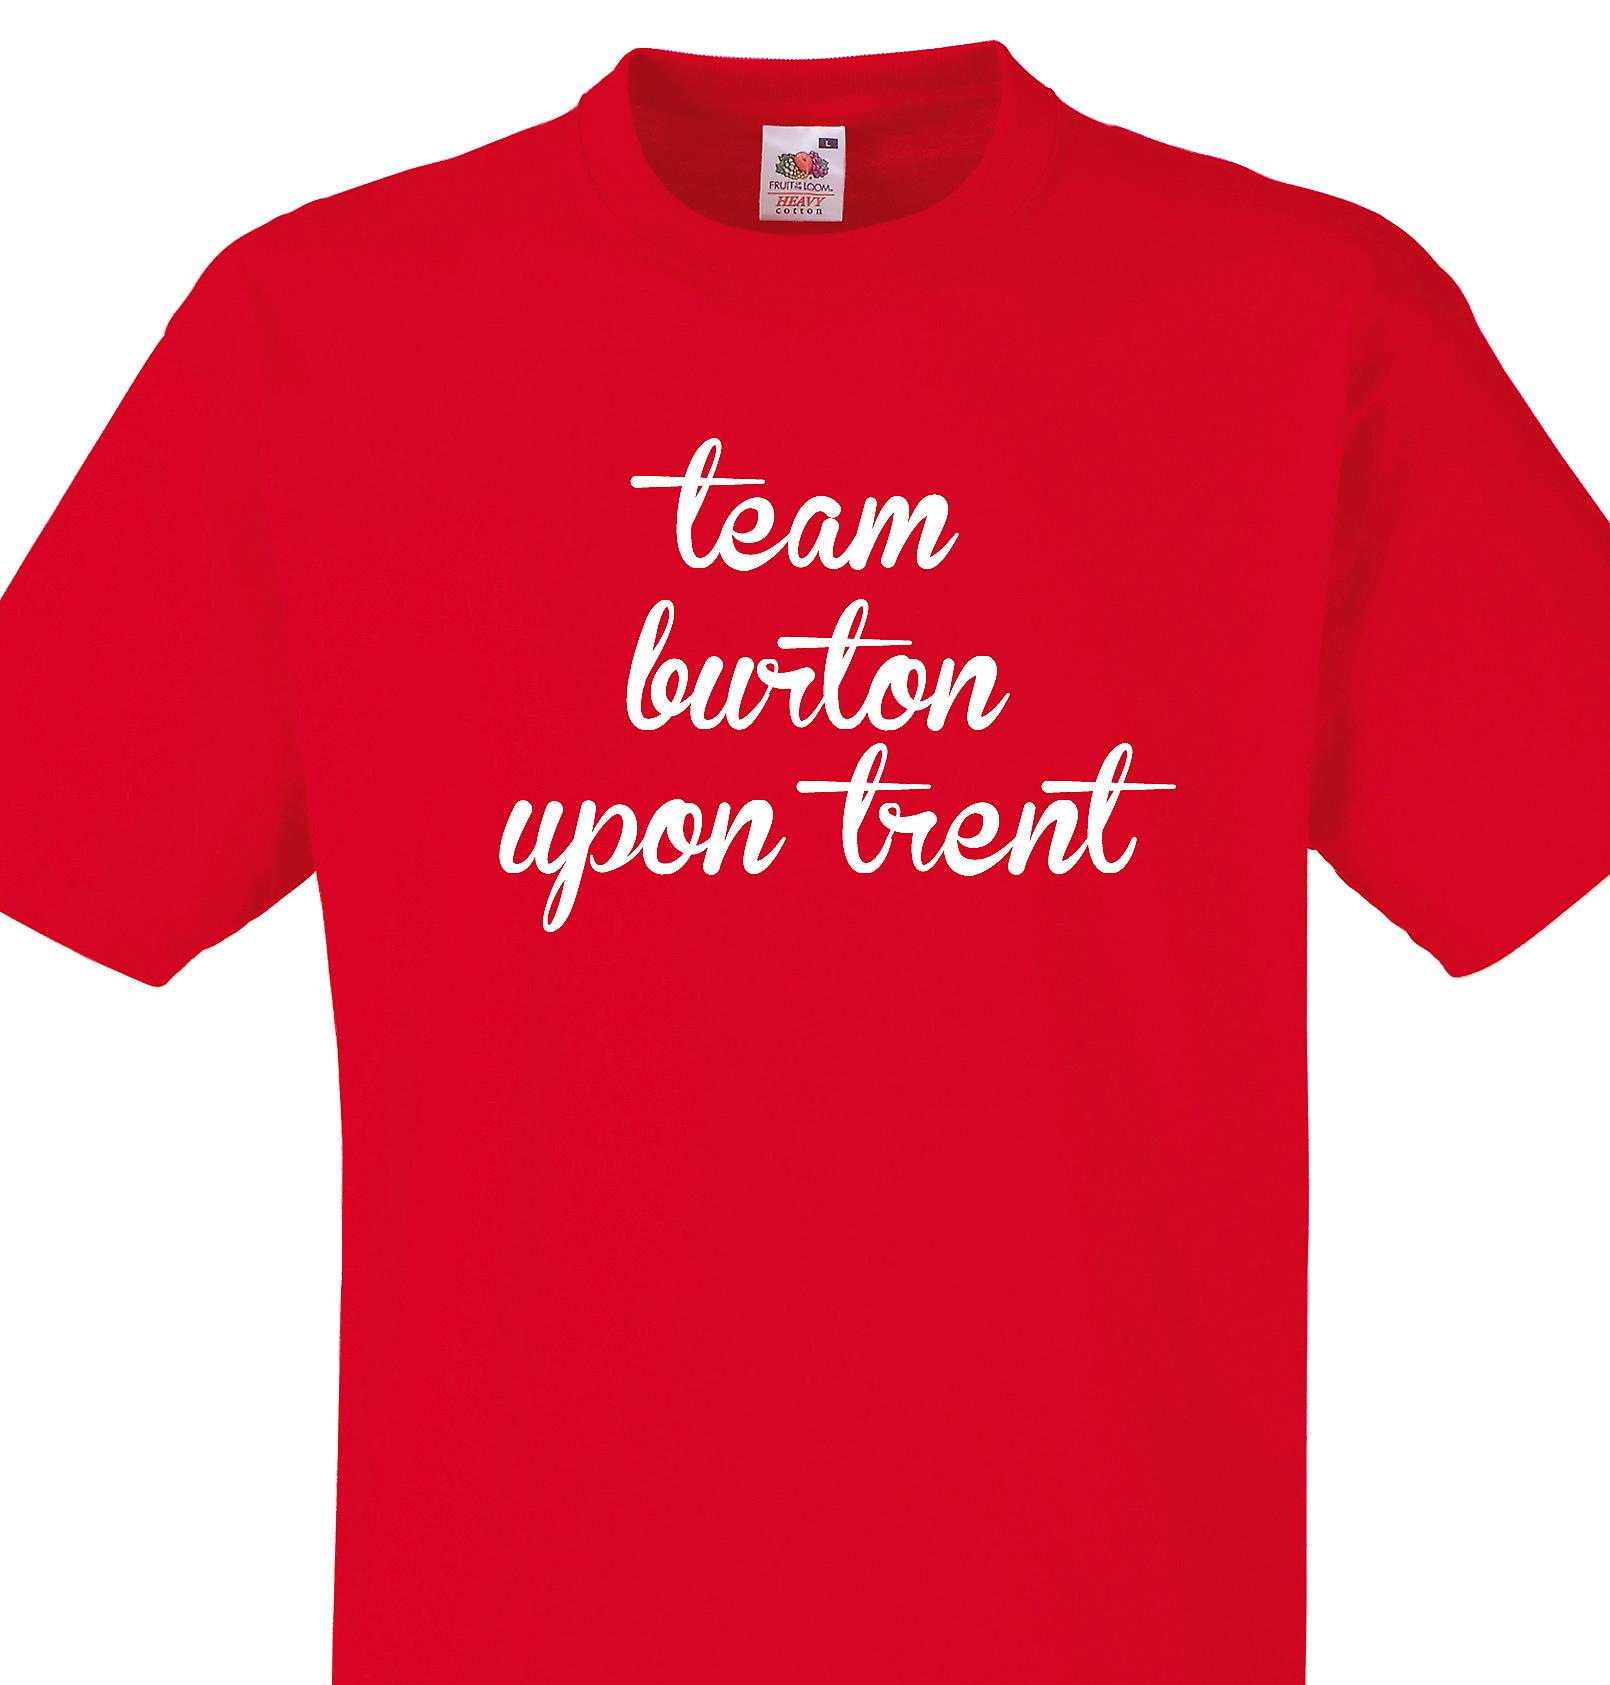 Team Burton upon trent Red T shirt